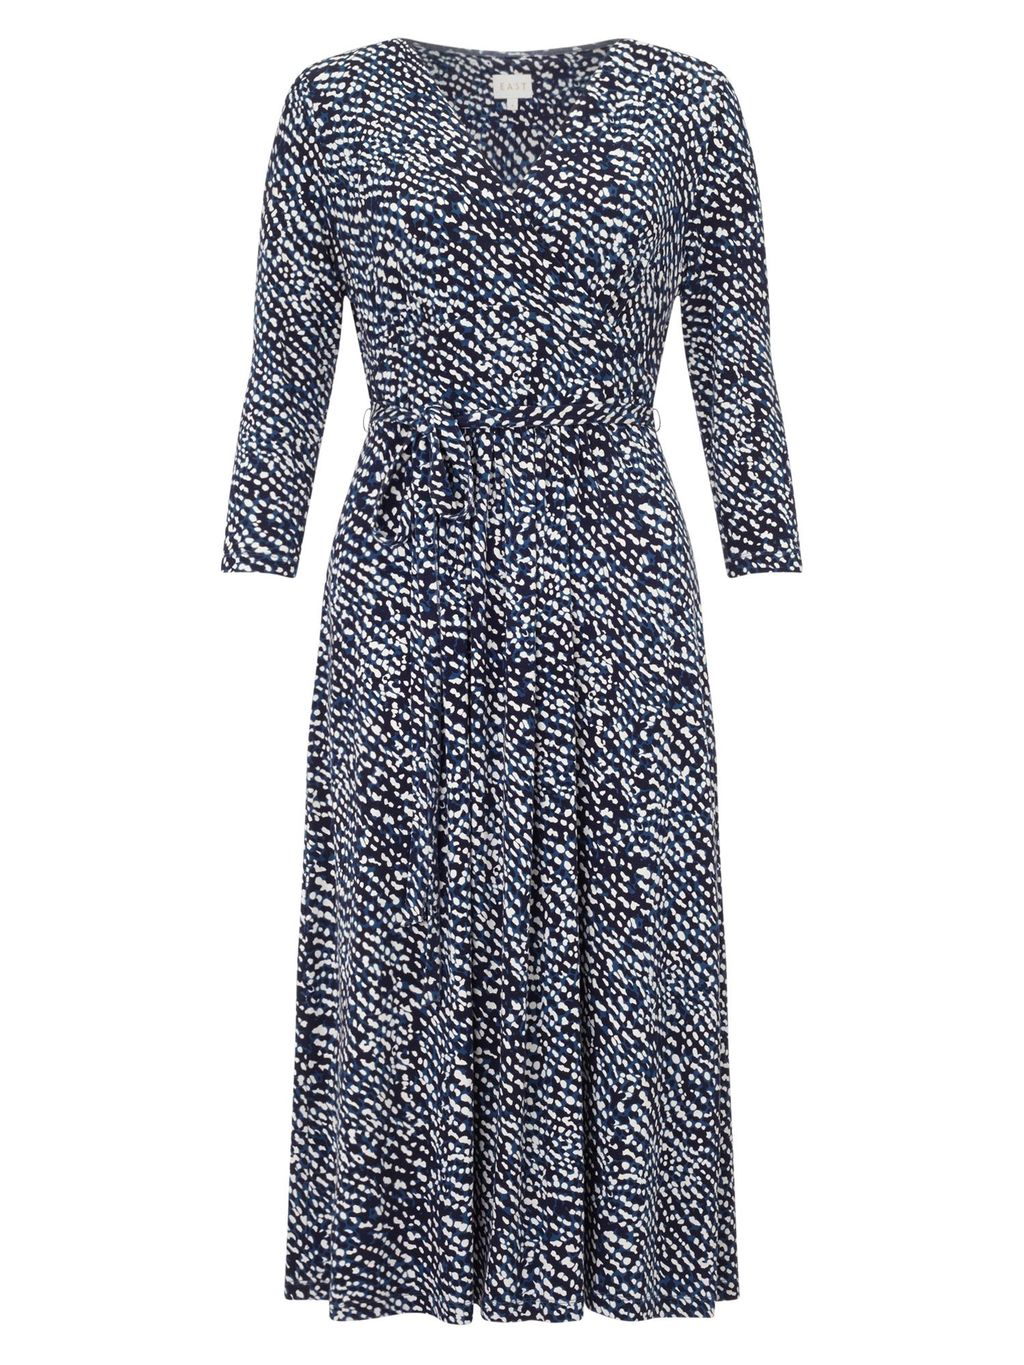 Rina Print Jersey Dress, Ink - style: shift; length: below the knee; neckline: v-neck; fit: fitted at waist; secondary colour: white; predominant colour: royal blue; fibres: viscose/rayon - stretch; hip detail: subtle/flattering hip detail; sleeve length: 3/4 length; sleeve style: standard; pattern type: fabric; pattern size: standard; pattern: patterned/print; texture group: jersey - stretchy/drapey; occasions: creative work; season: s/s 2016; wardrobe: highlight